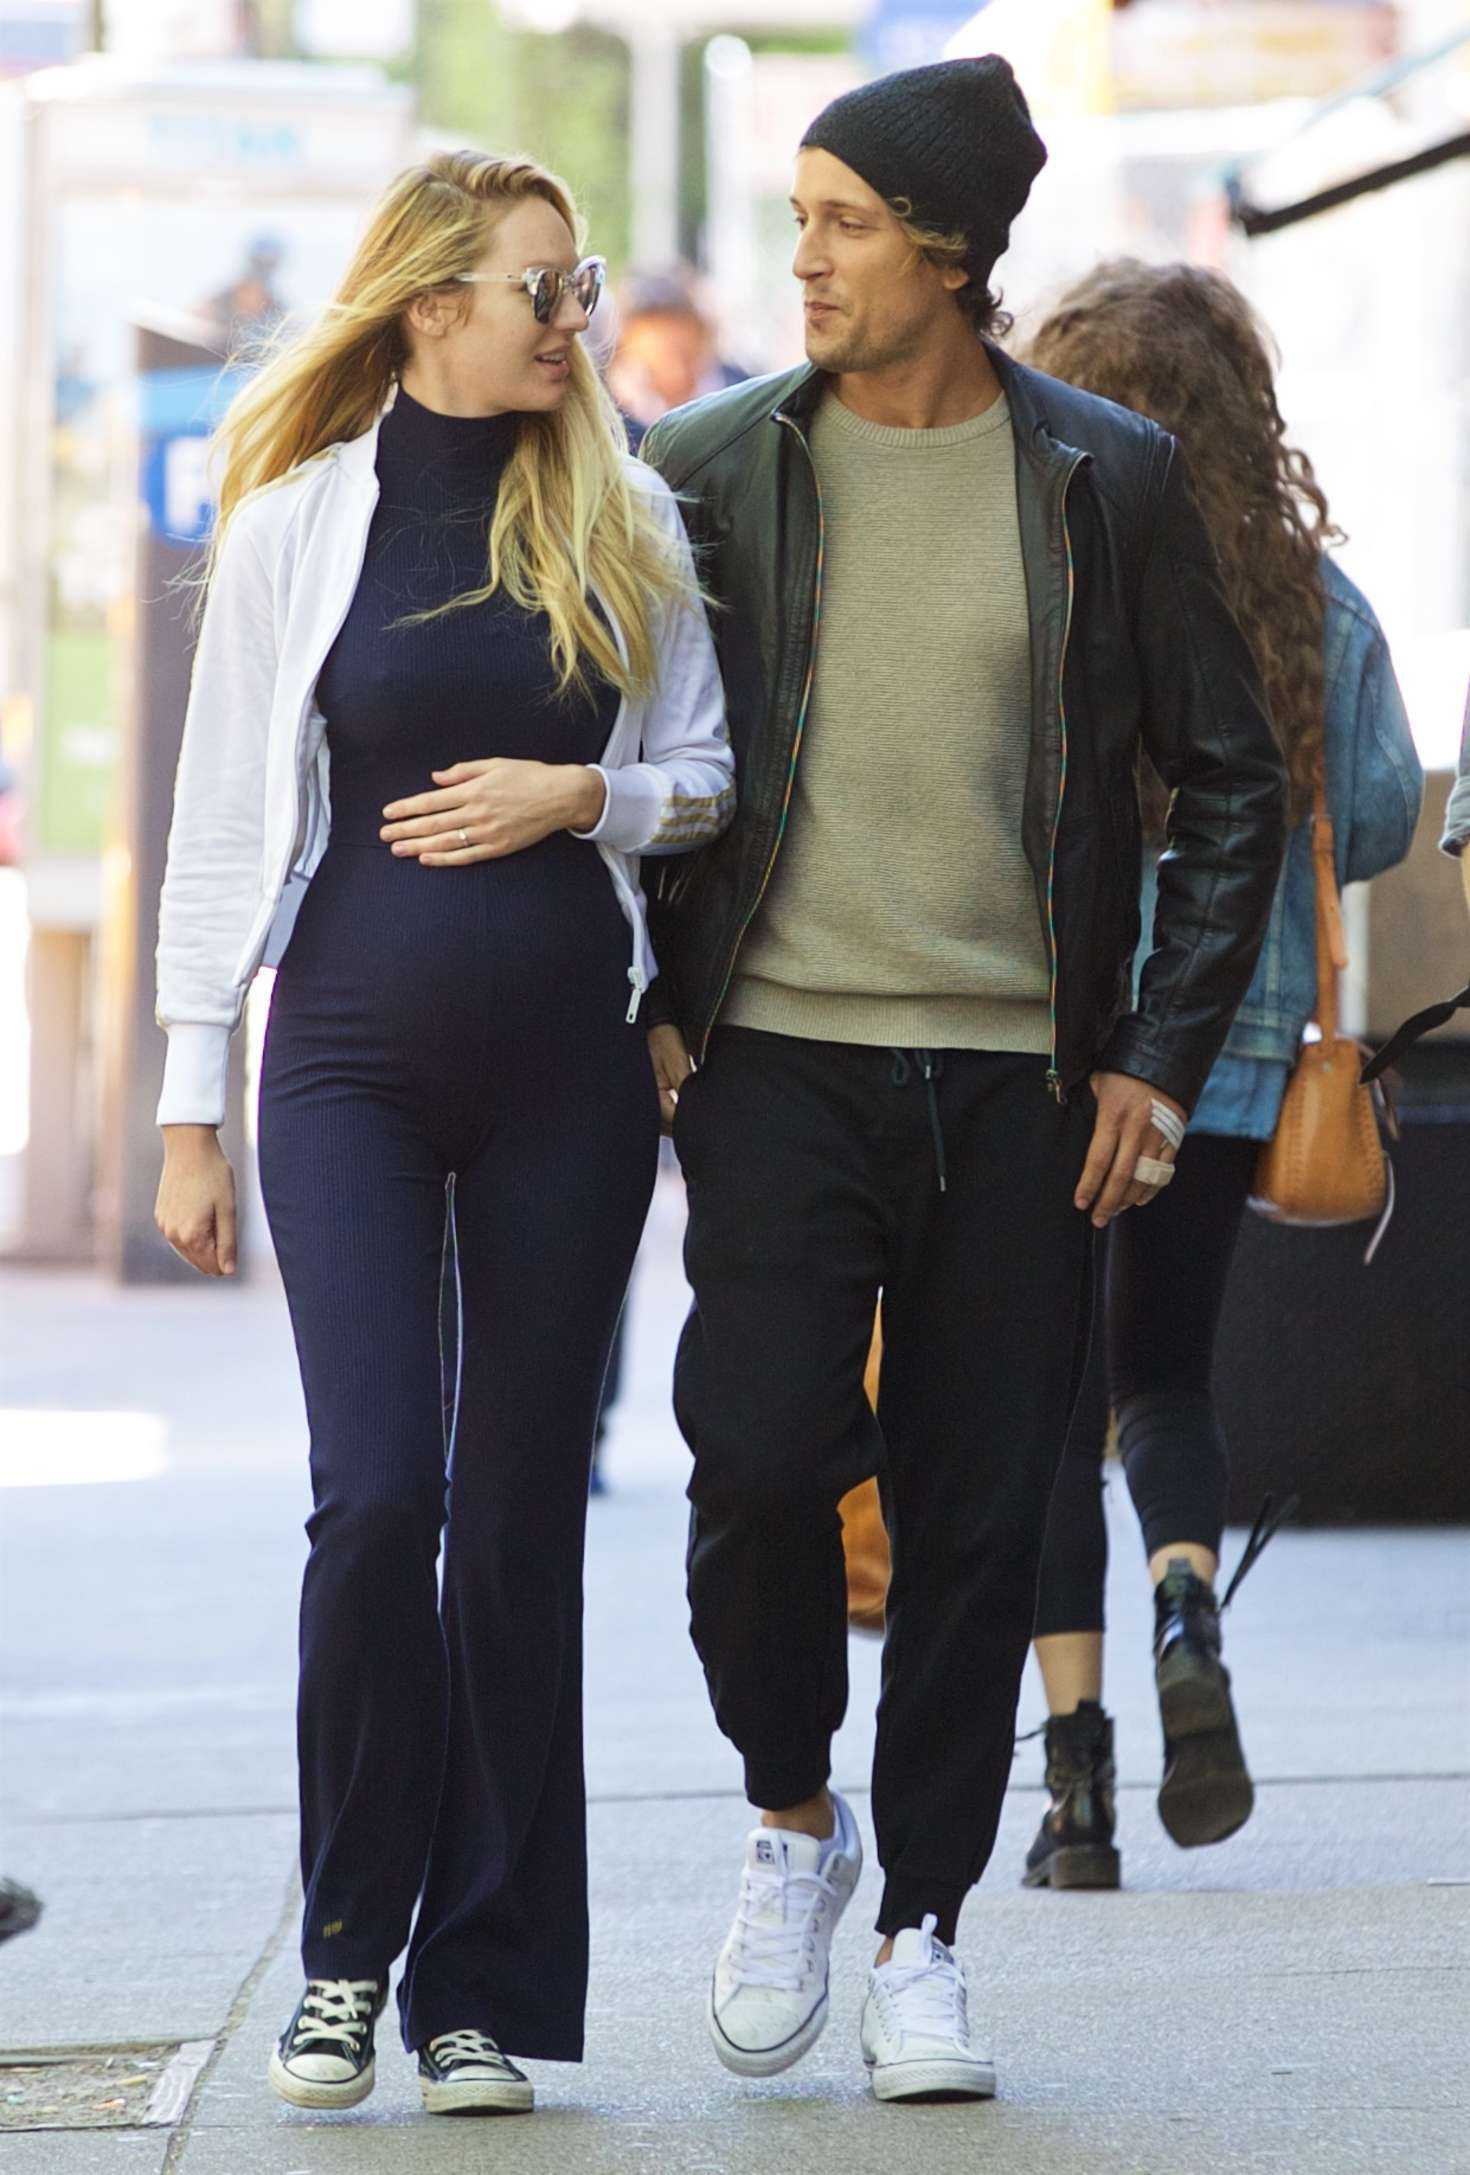 Candice Swanepoel wit fiance Hermann Nicoli Out in NYC